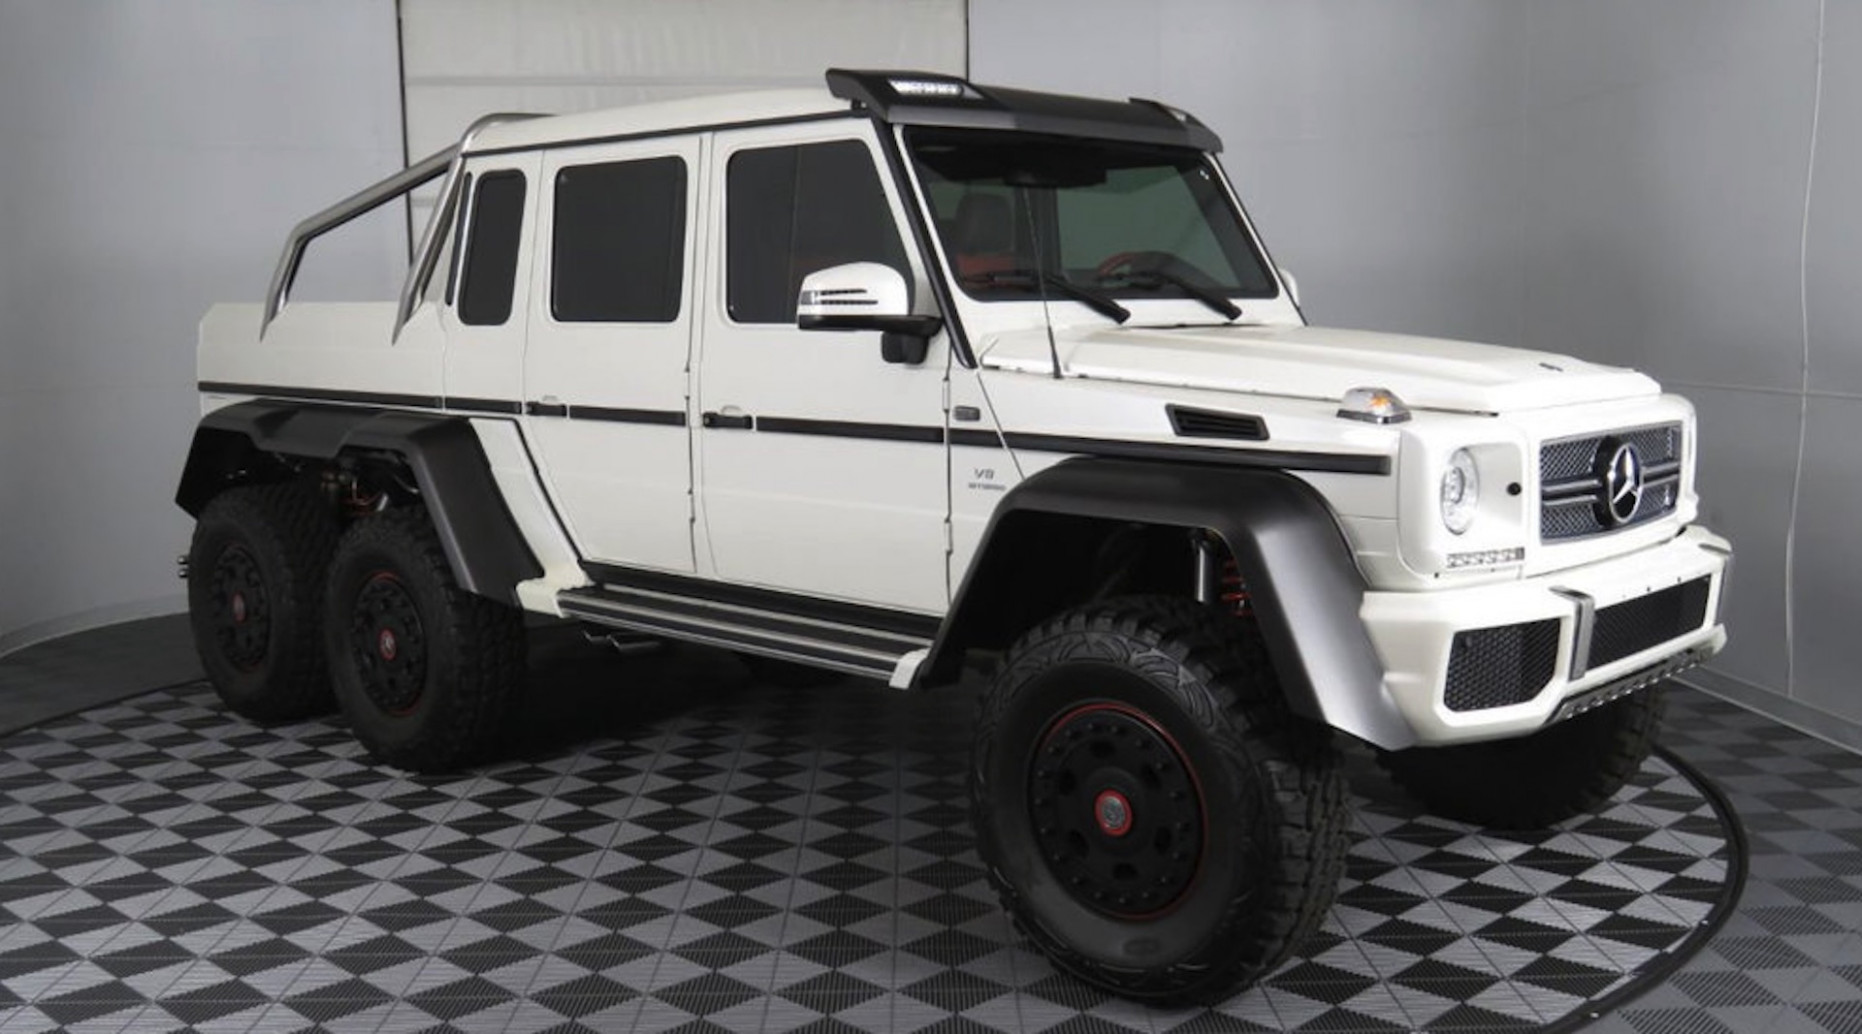 6 Mercedes-AMG G6 6x6 for sale in US for $6